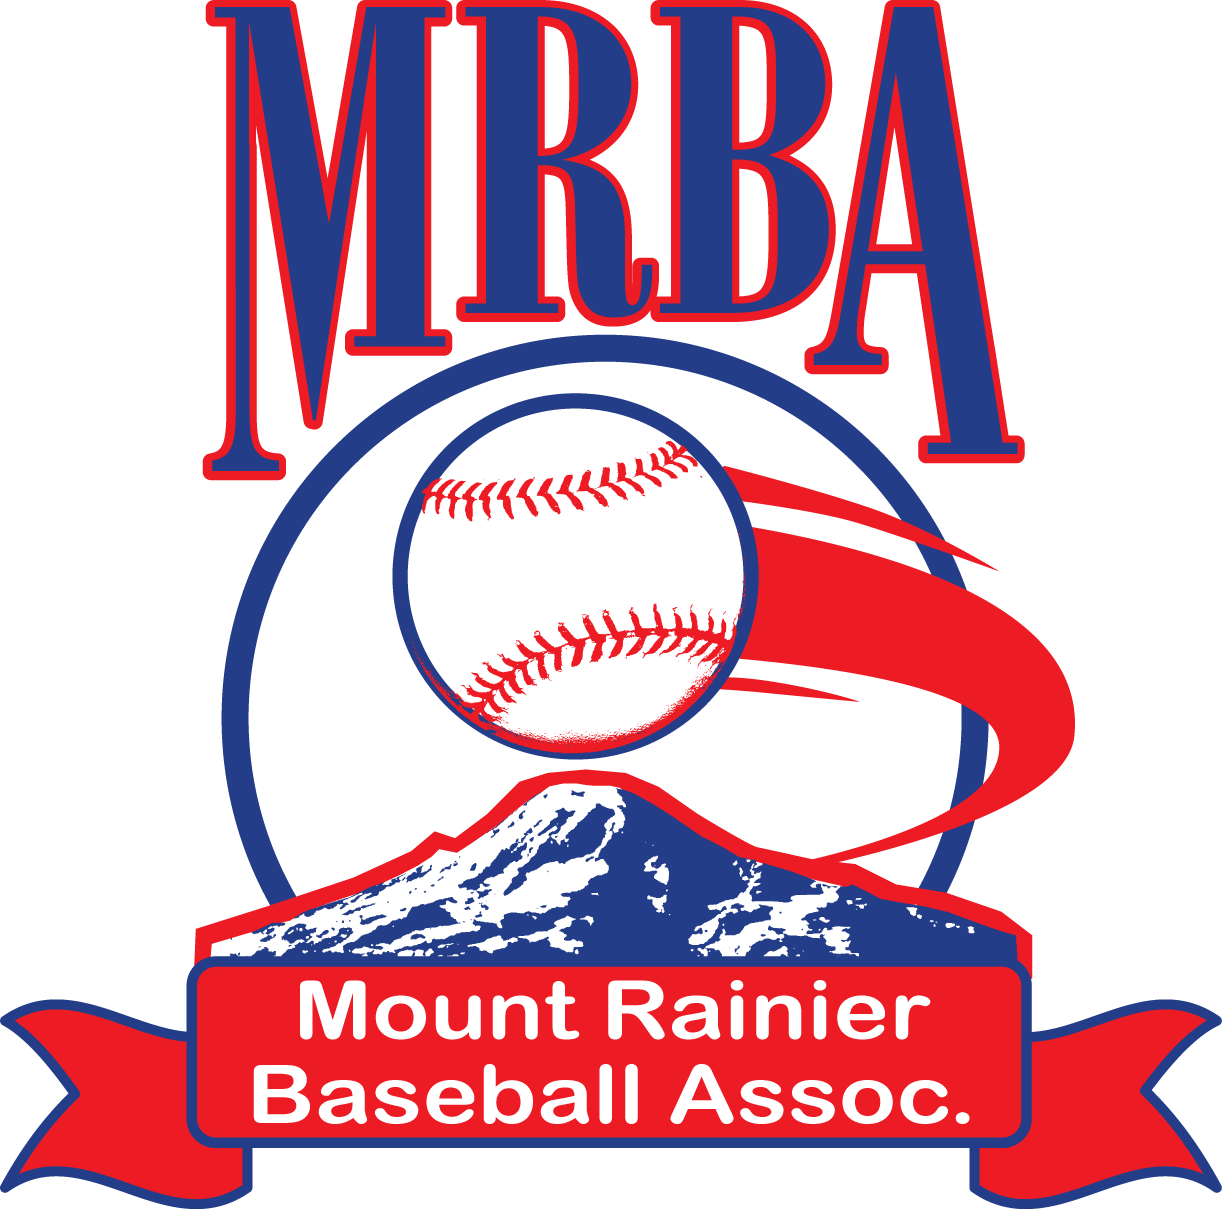 *Mt. Rainier Baseball Association*